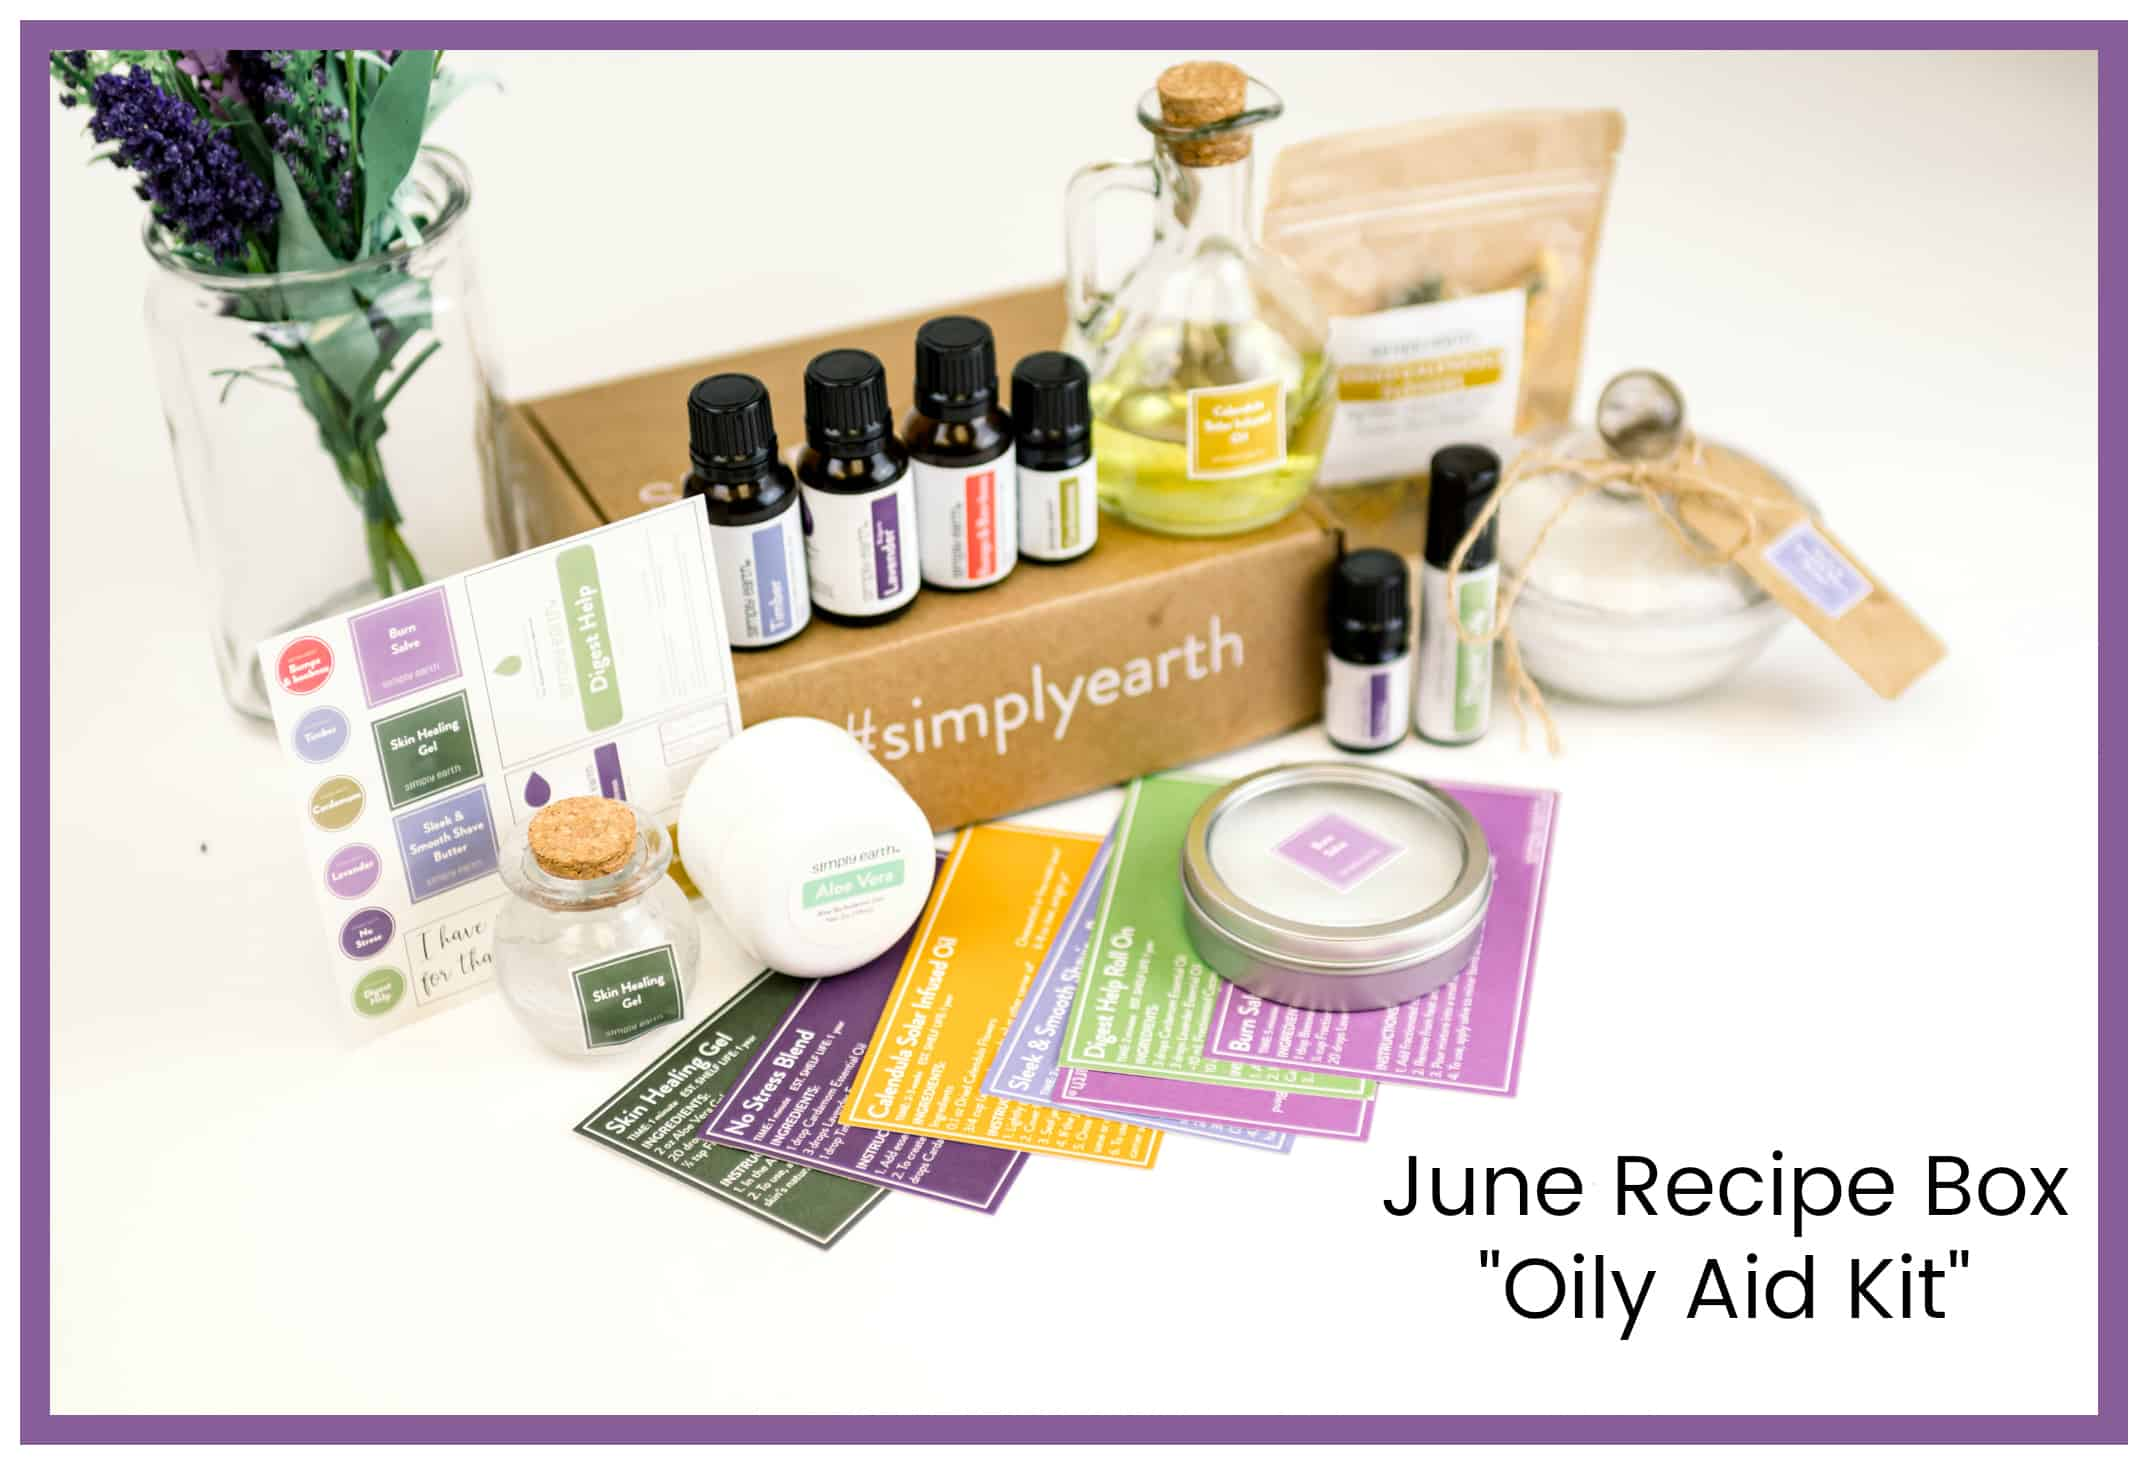 This is a GREAT way for someone new to essential oils to build her collection of essential oils and supplies. It's also a fabulous gift idea for your mom, sister, daughter, niece, or best friend. It's the gift that keeps on giving . . . every month. #essentialoils #aromatherapy #simplyearth